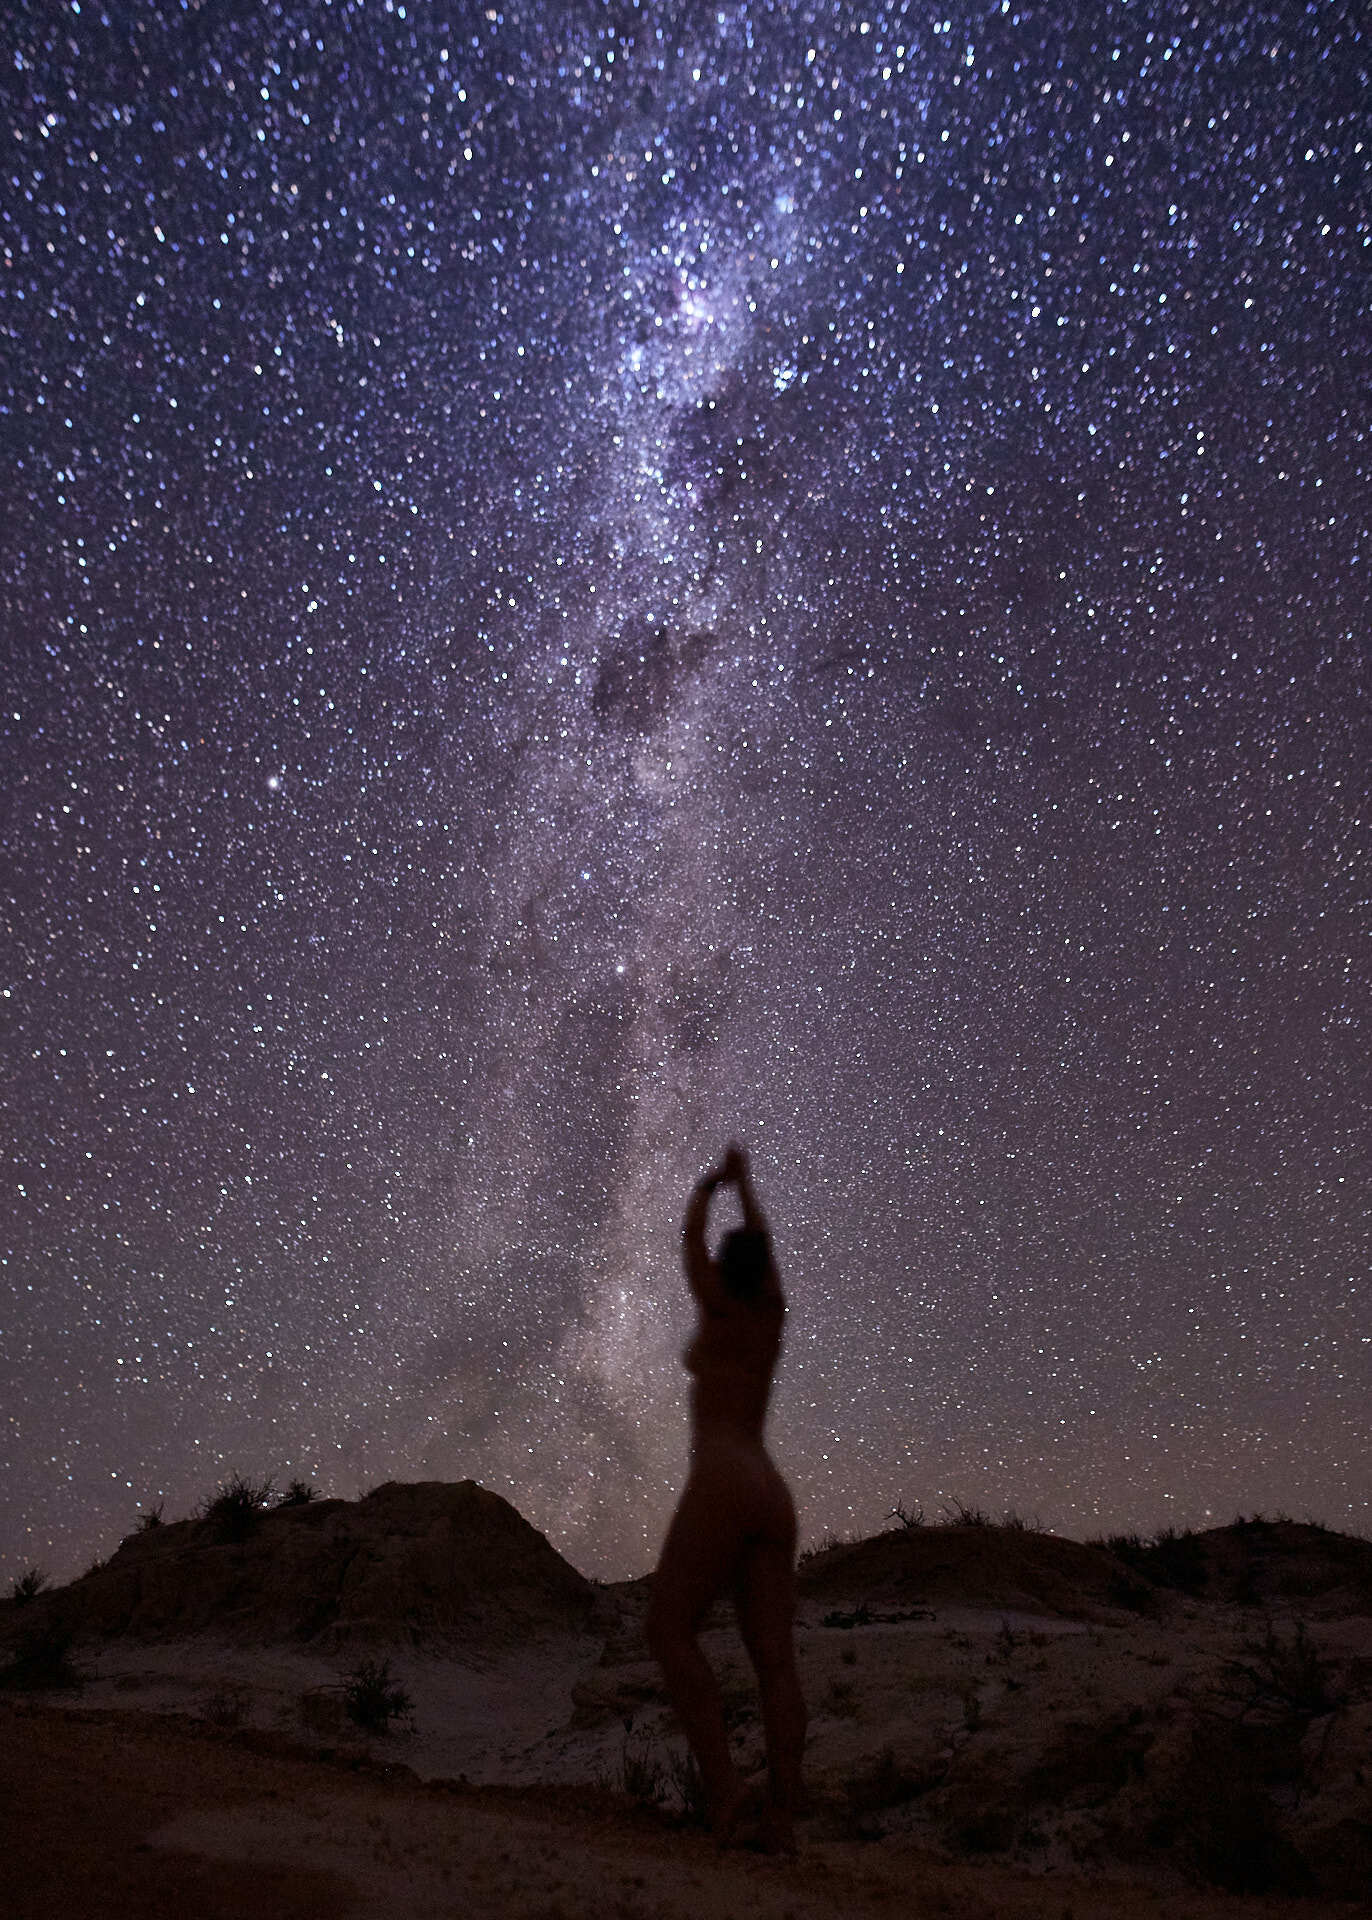 How To Get Nude for Mother Nature (Hint: She's Seen It Before), joe brn Cuzzocrea, nude, astrophotography, milky way